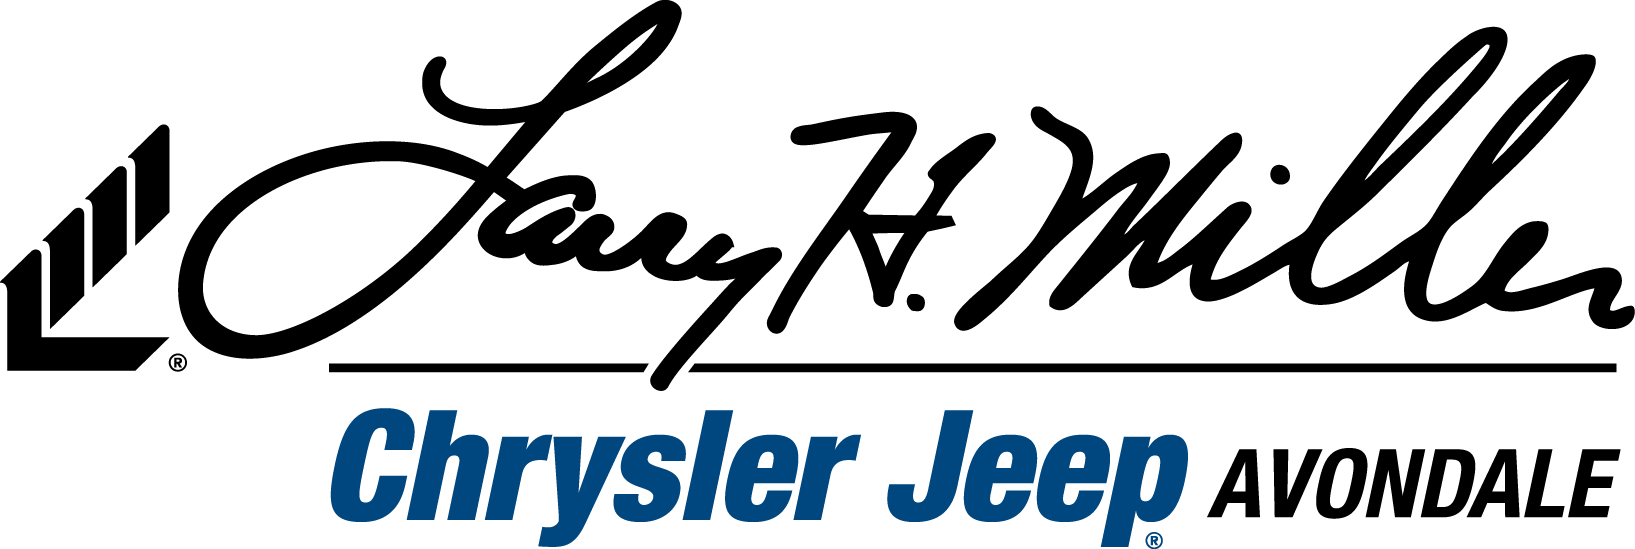 Larry miller chrysler jeep avondale az